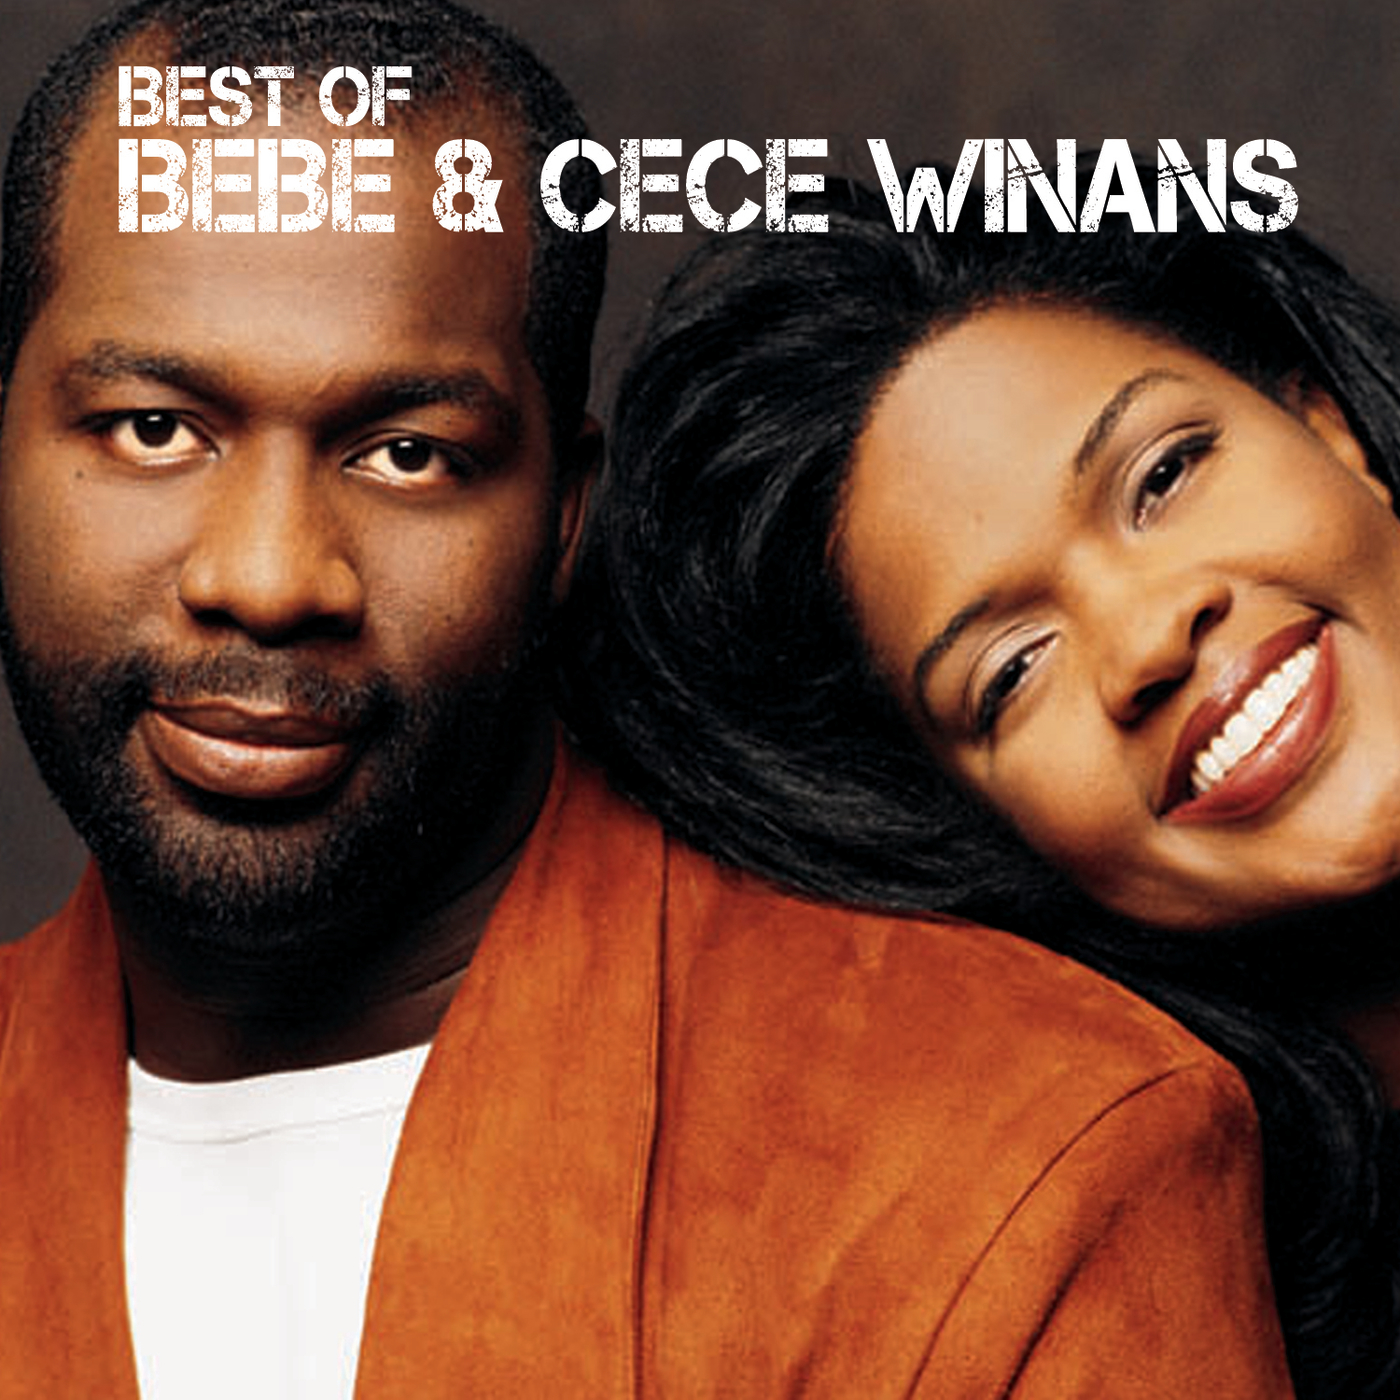 bebe and cece winans lost without you lyrics